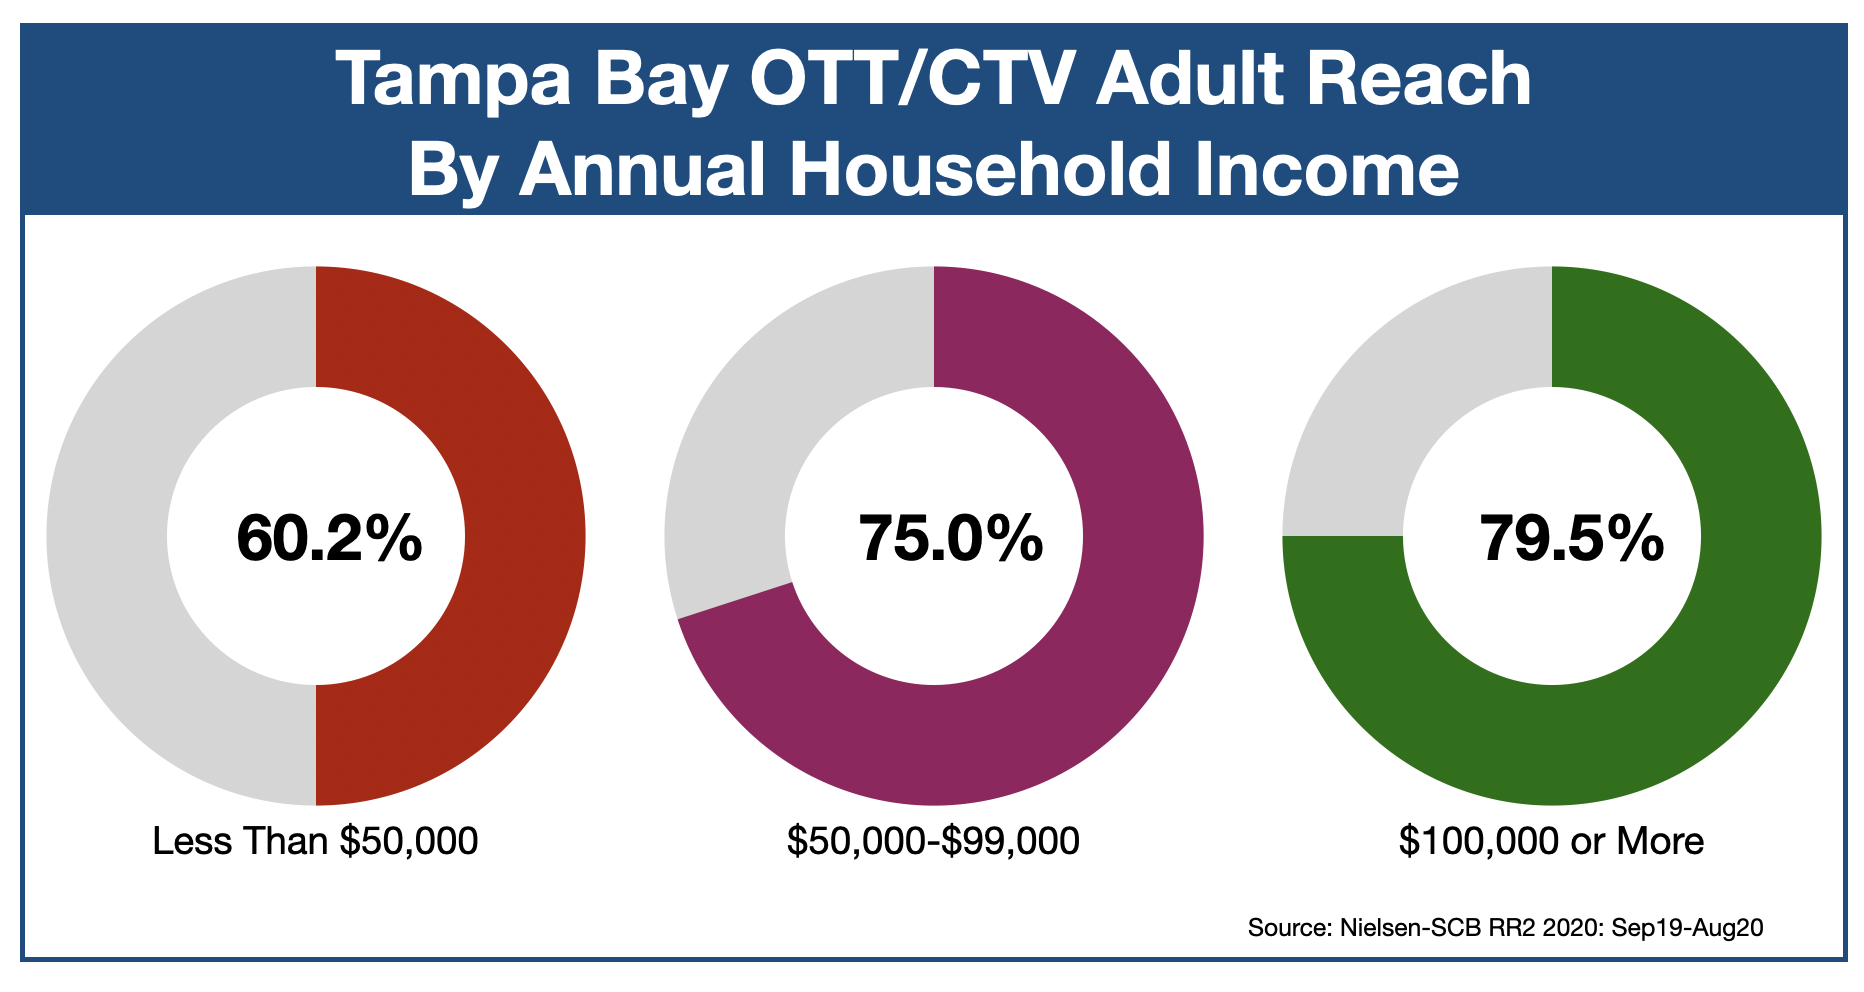 OTT & CTV advertising in Tampa Bay Income